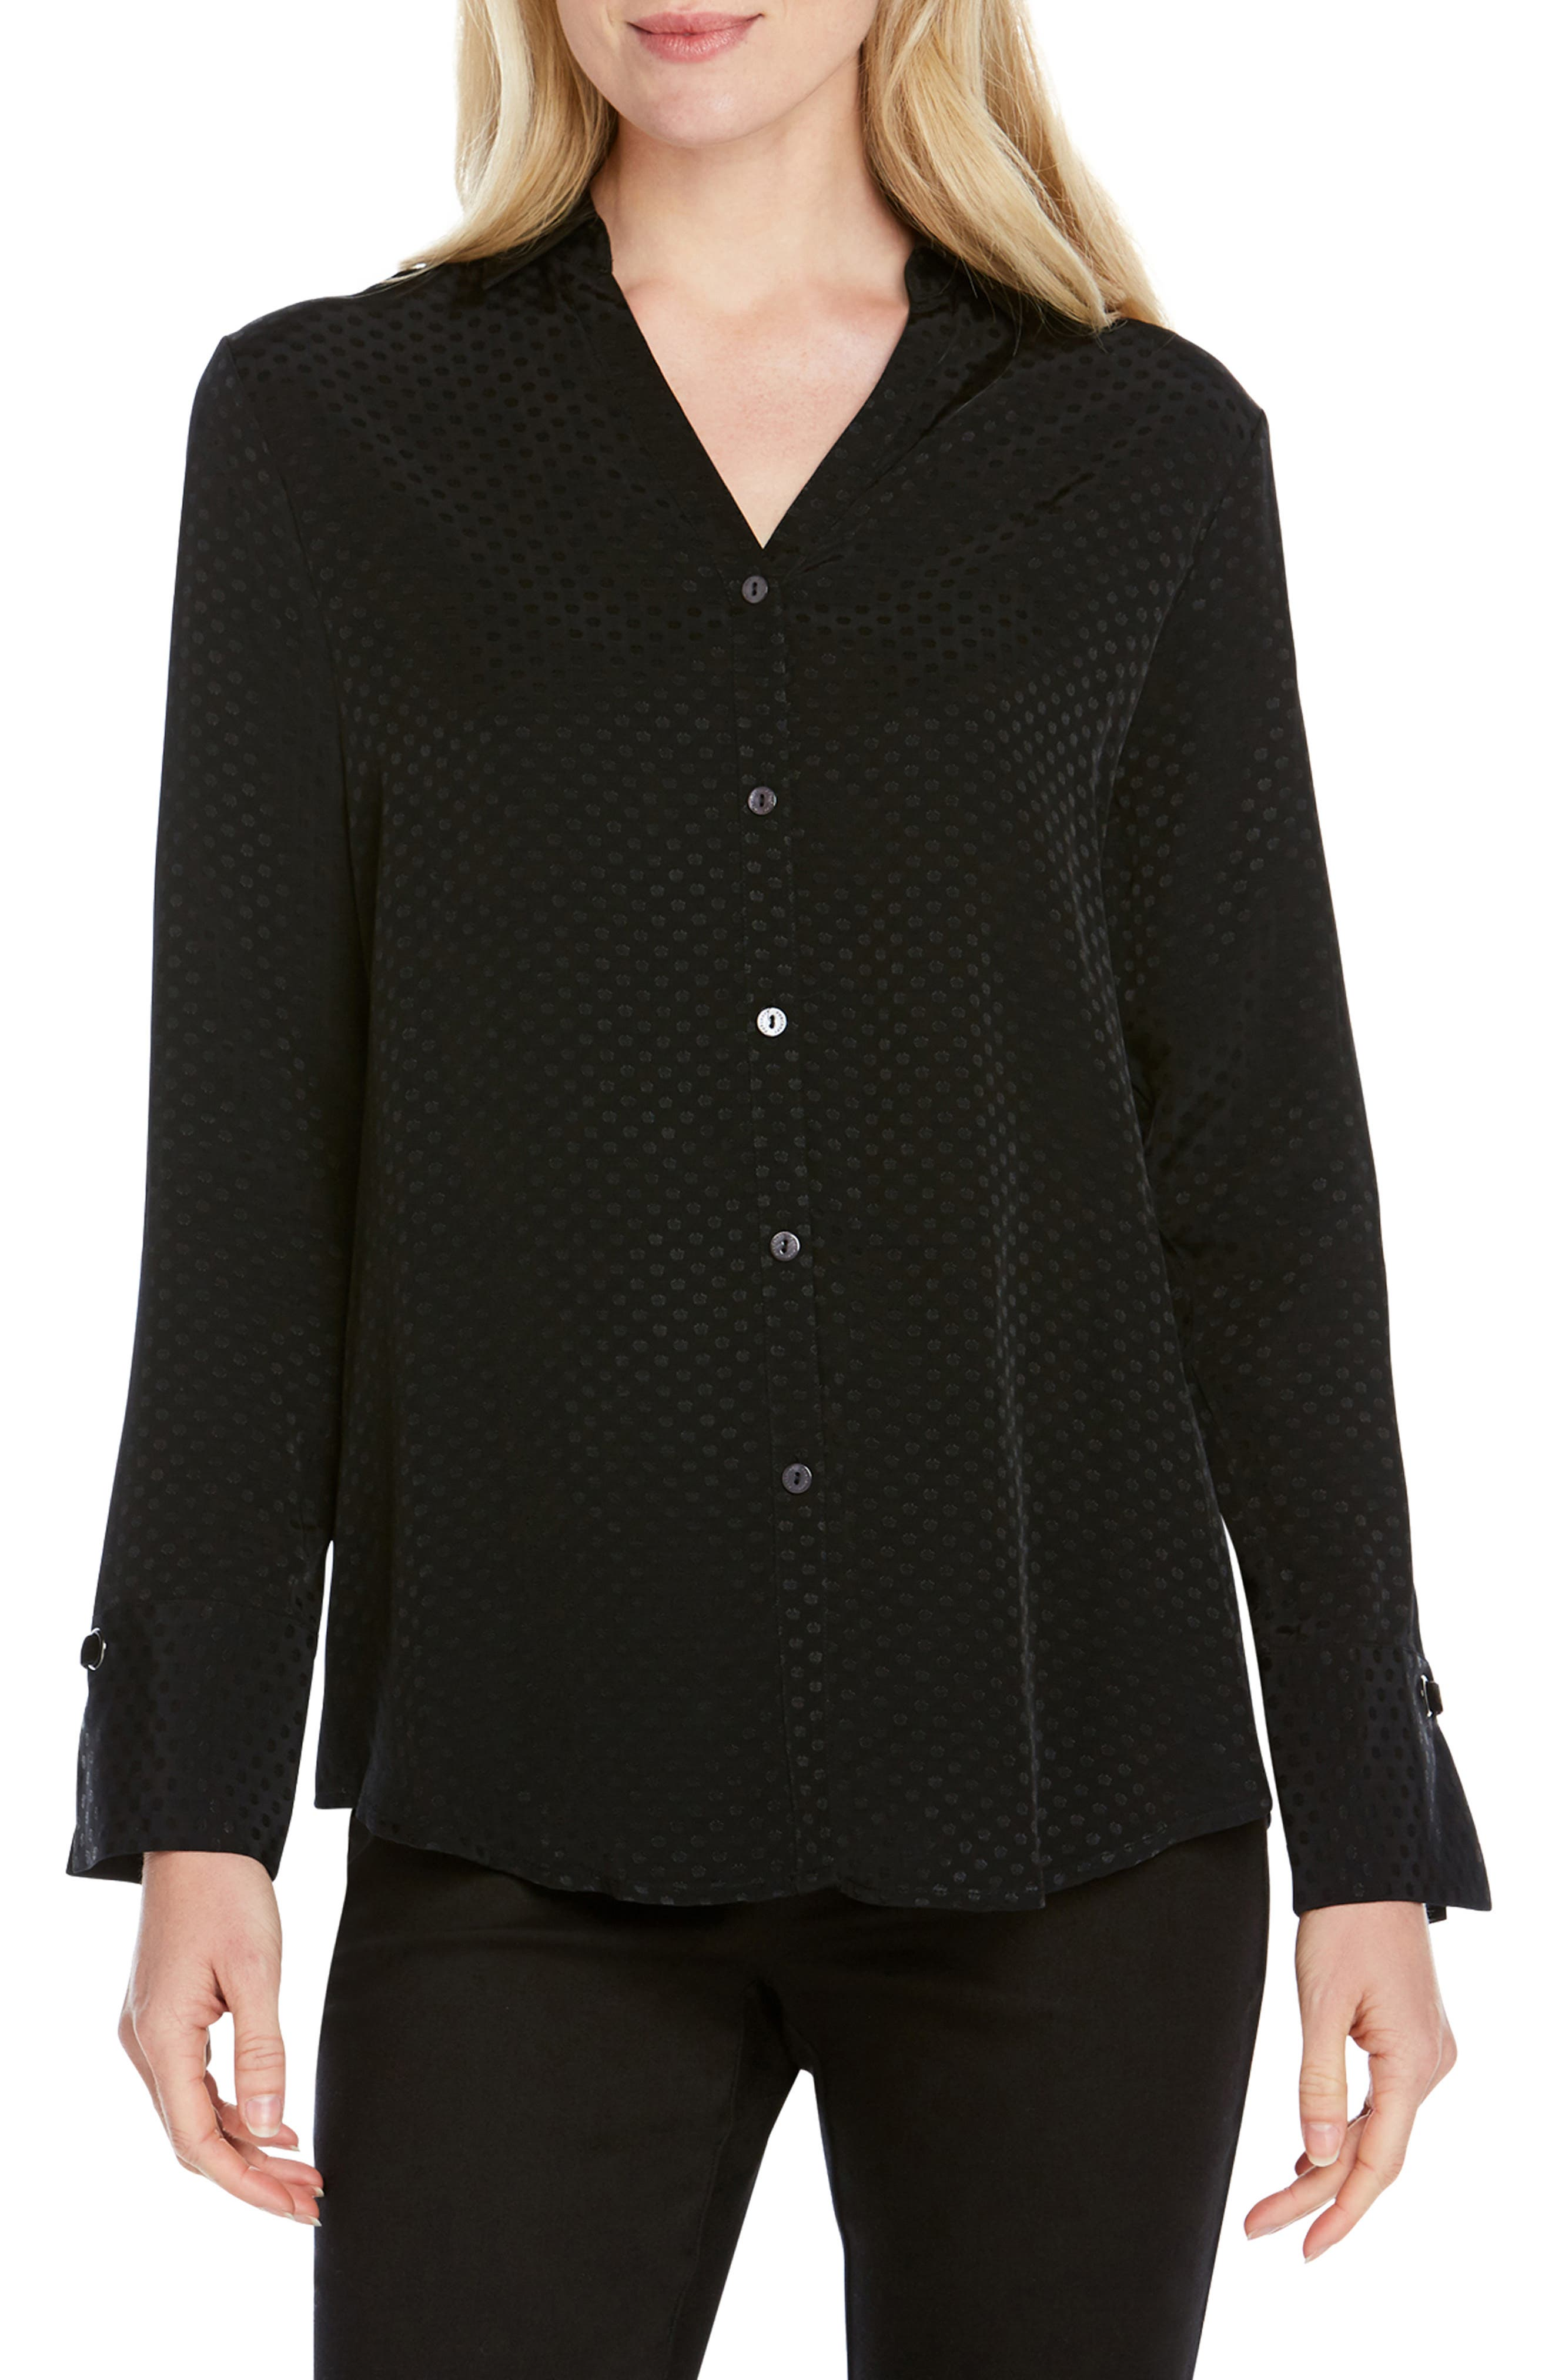 FOXCROFT Lilian Dotted Jacquard Blouse in Black